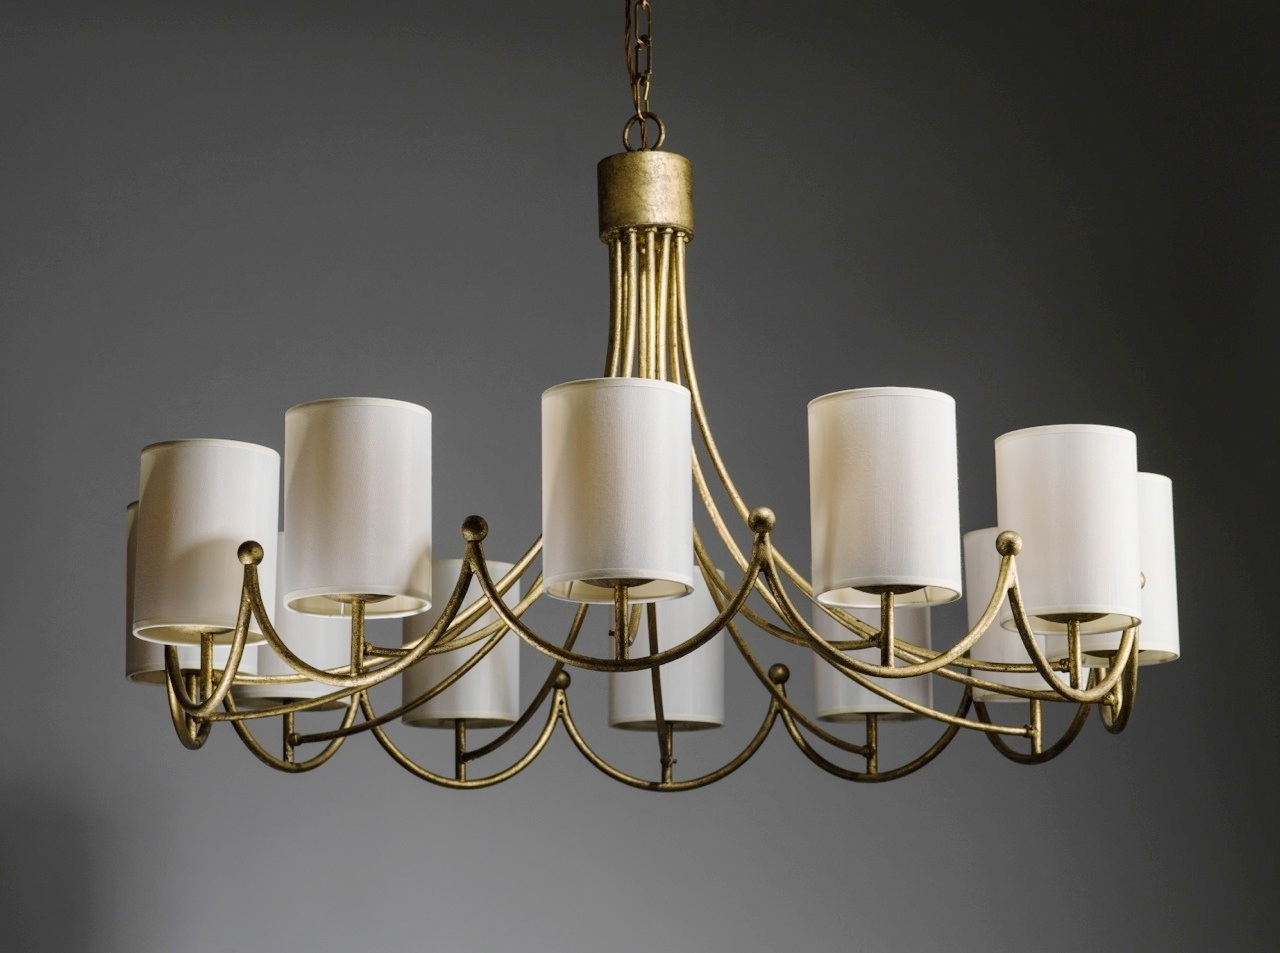 Cream Gold Chandelier With Most Recent Royere Inspired Wrought Iron 12 Light Chandelier In Distressed Gold (View 5 of 15)